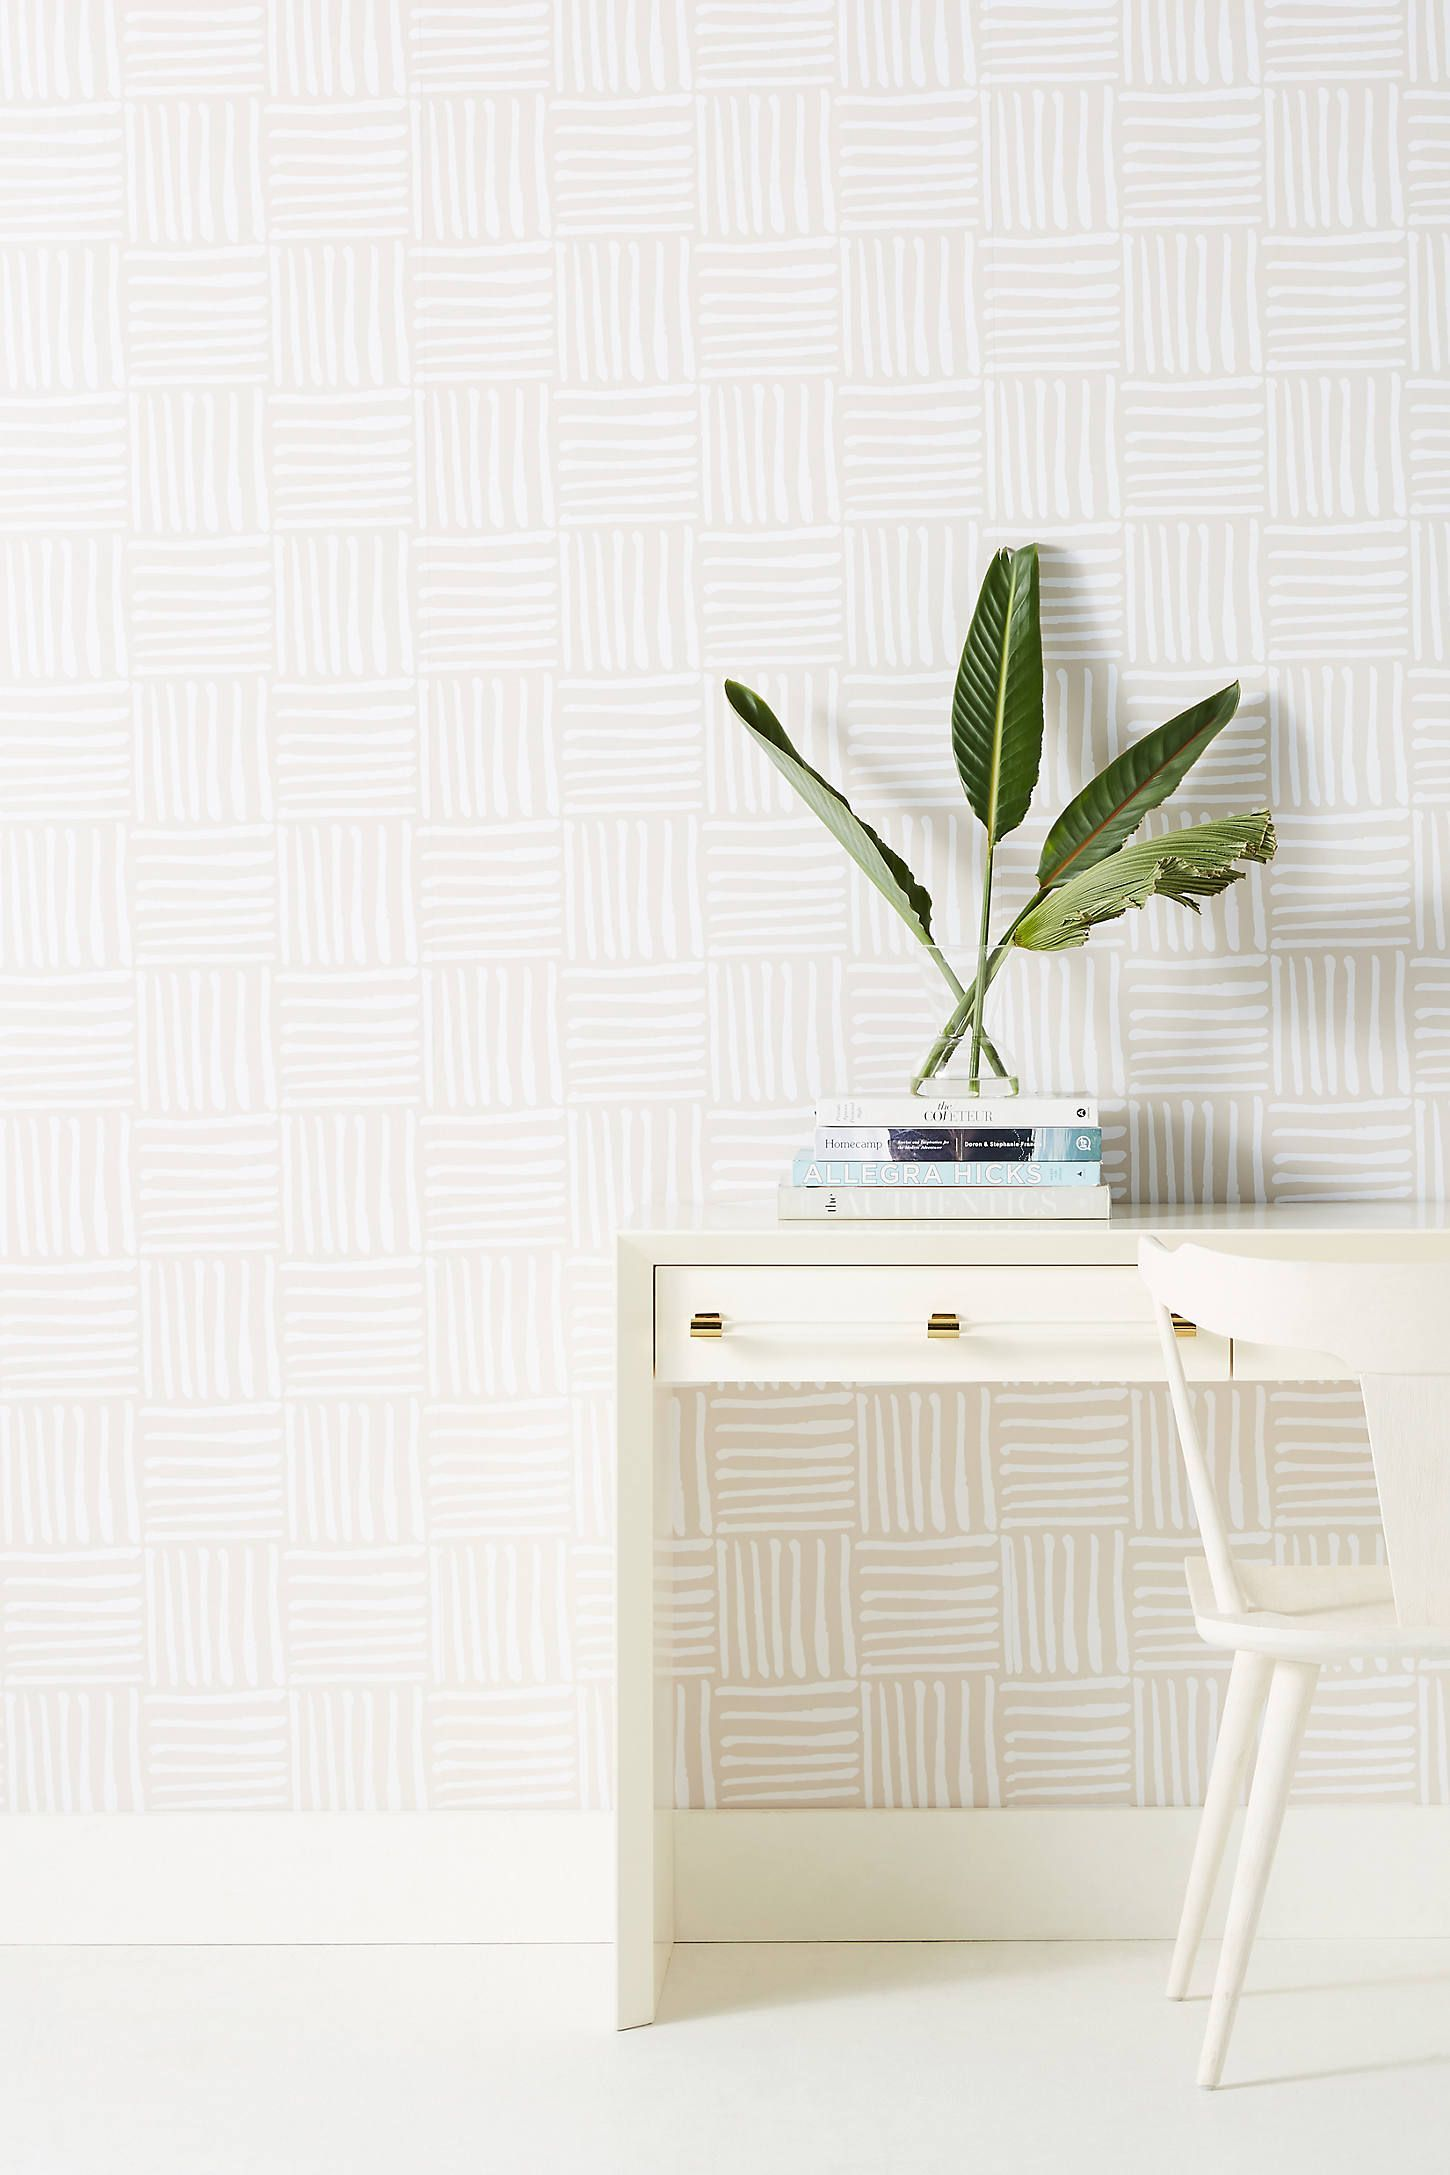 Hatch Wallpaper by Mitchell Black in Beige, Wall Decor at